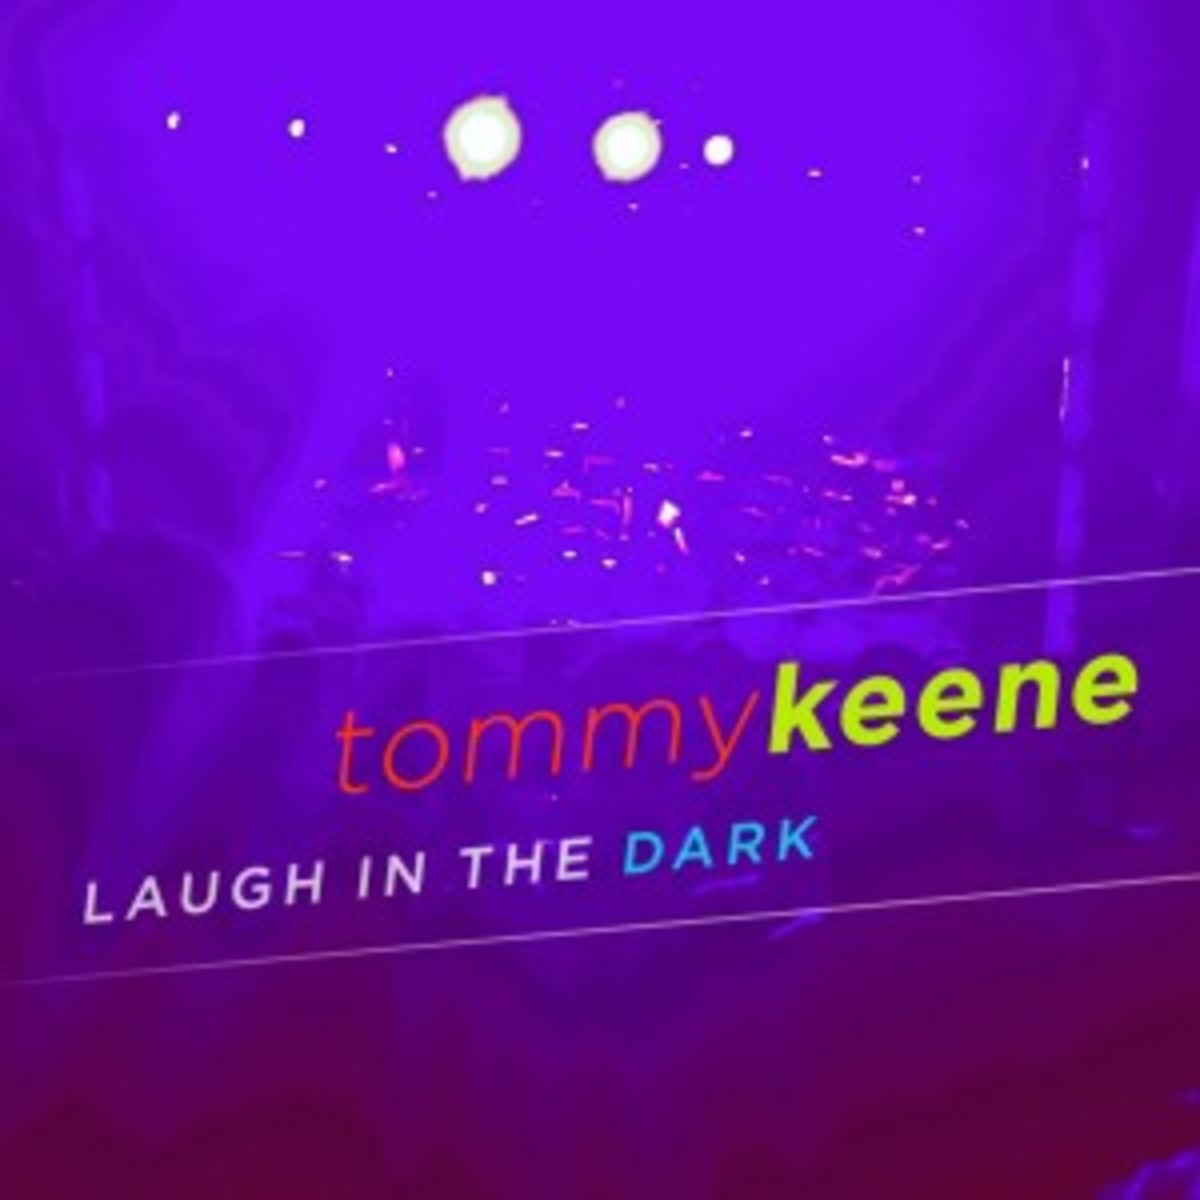 tommy-keene-laugh-in-the-dark